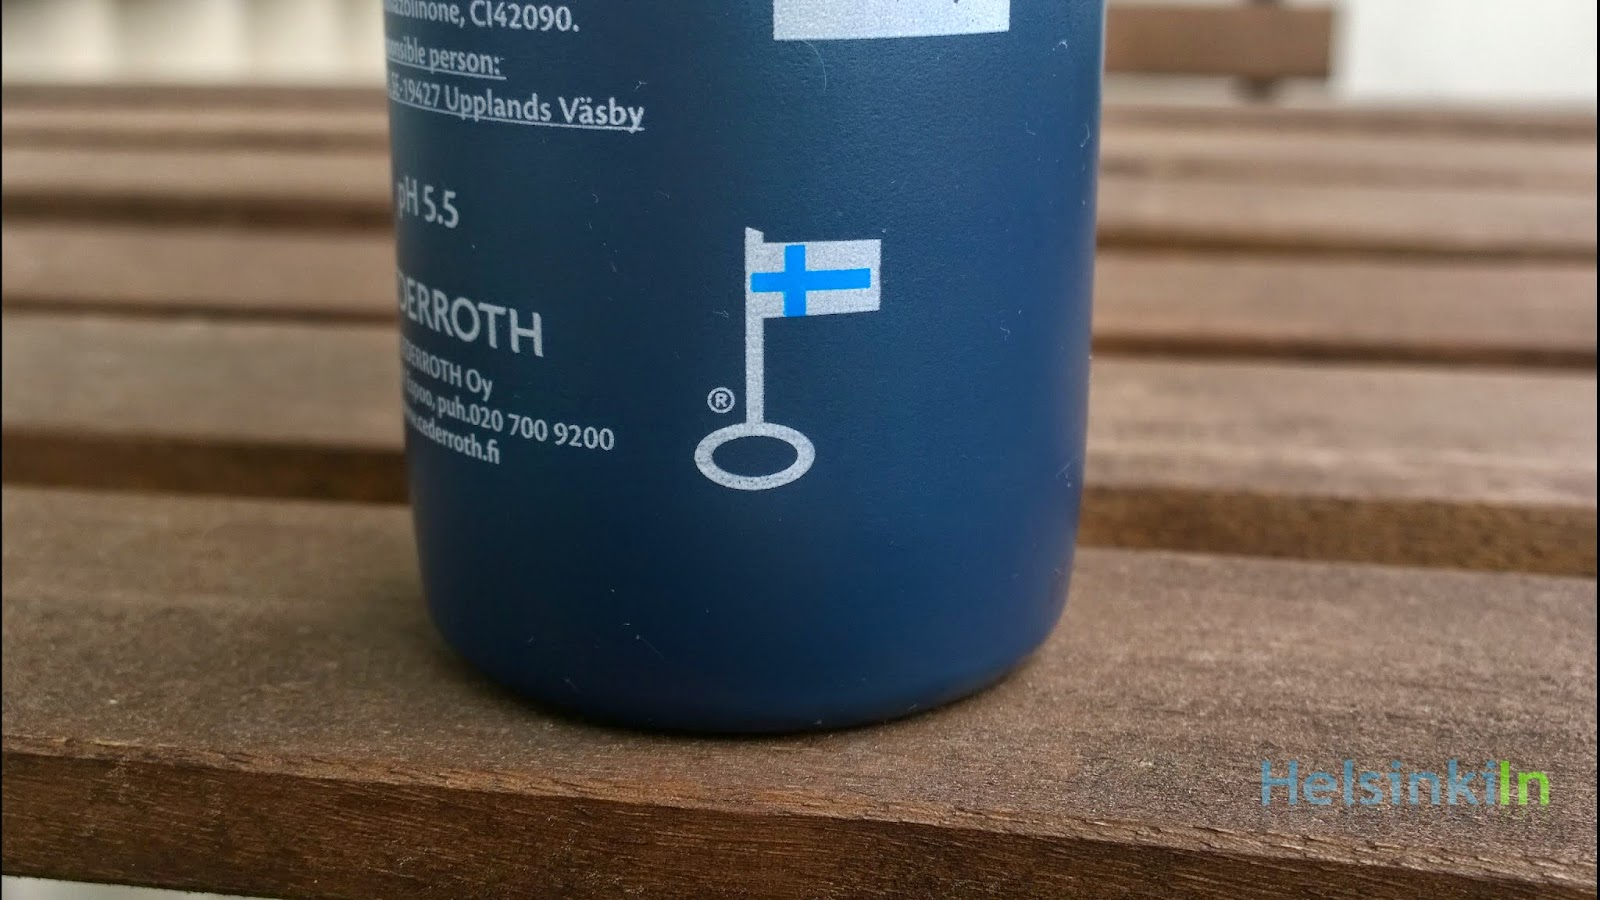 Avainlippu on shampoo bottle